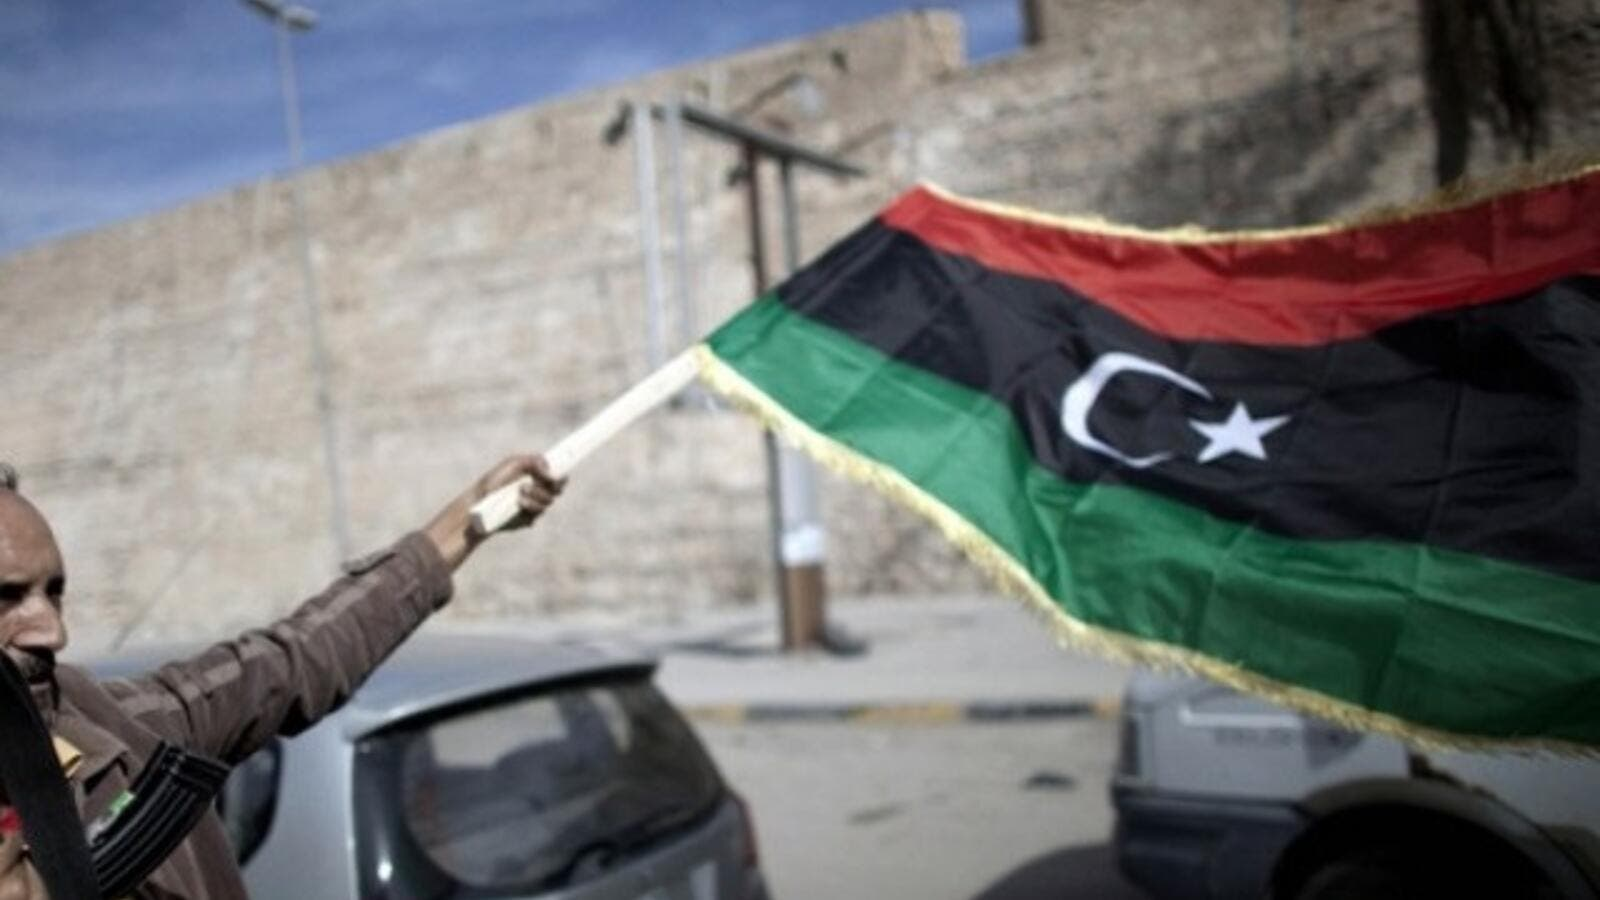 A man waves a Libyan flag in the midst of increasing conflict and dangers in Libya. (AFP/File)